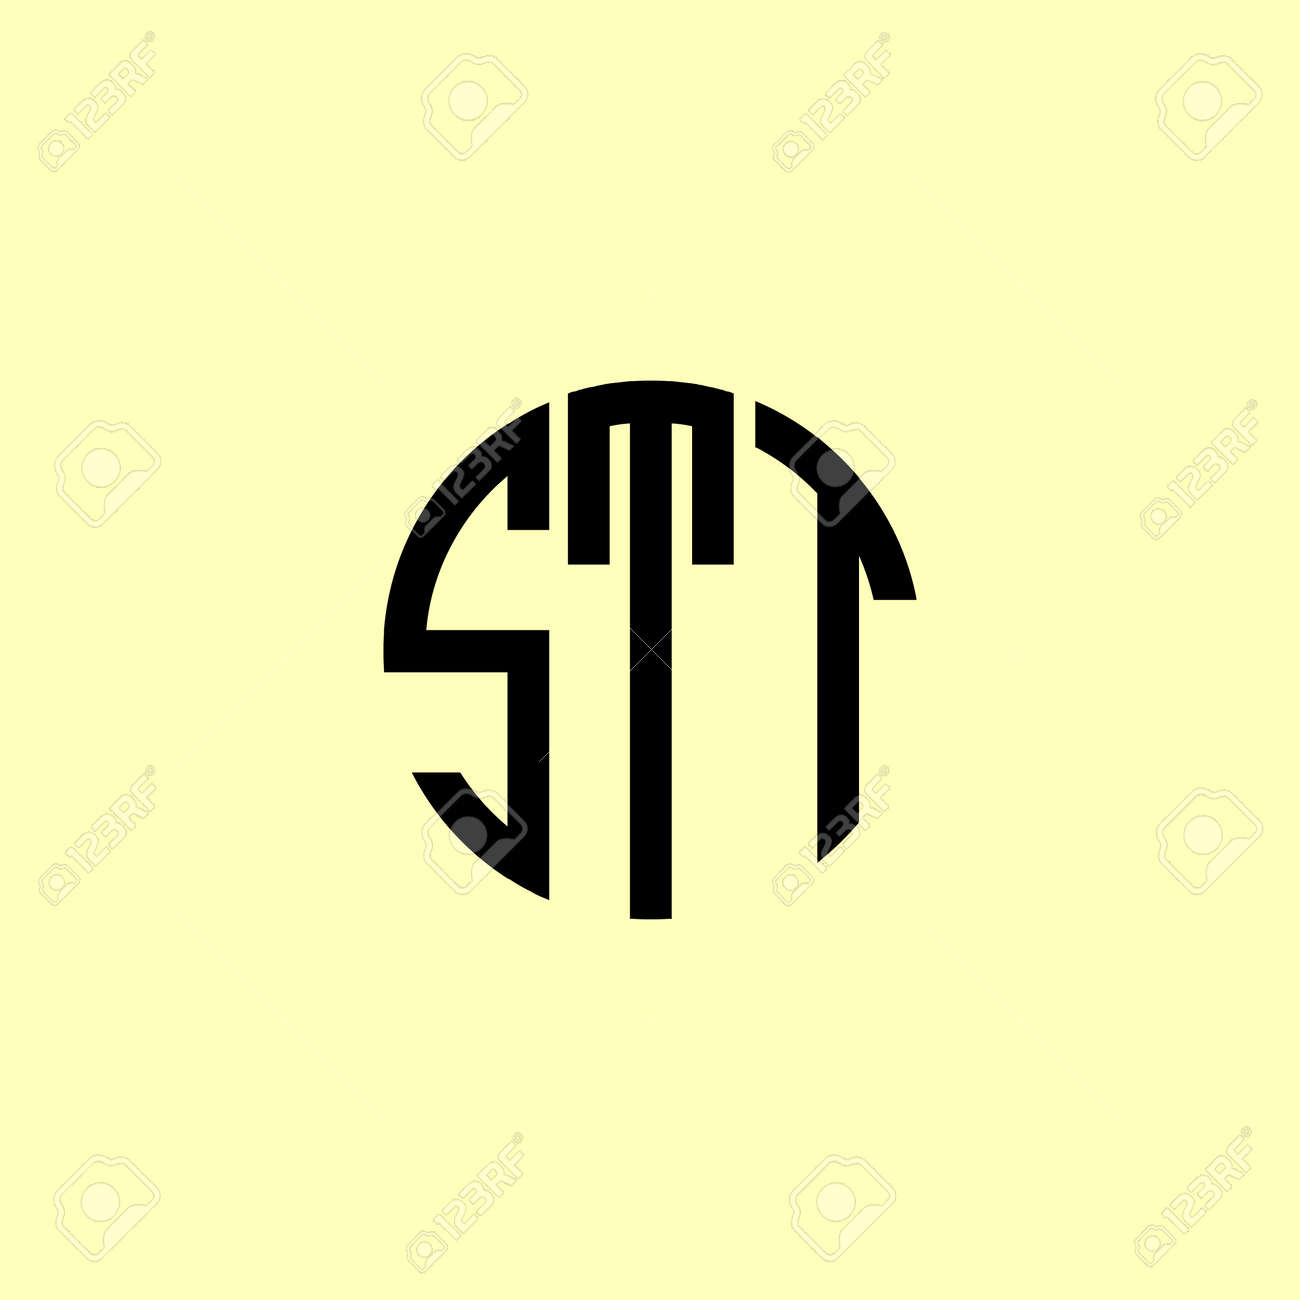 Creative Rounded Initial Letters STT Logo. It will be suitable for which company or brand name start those initial. - 171820229